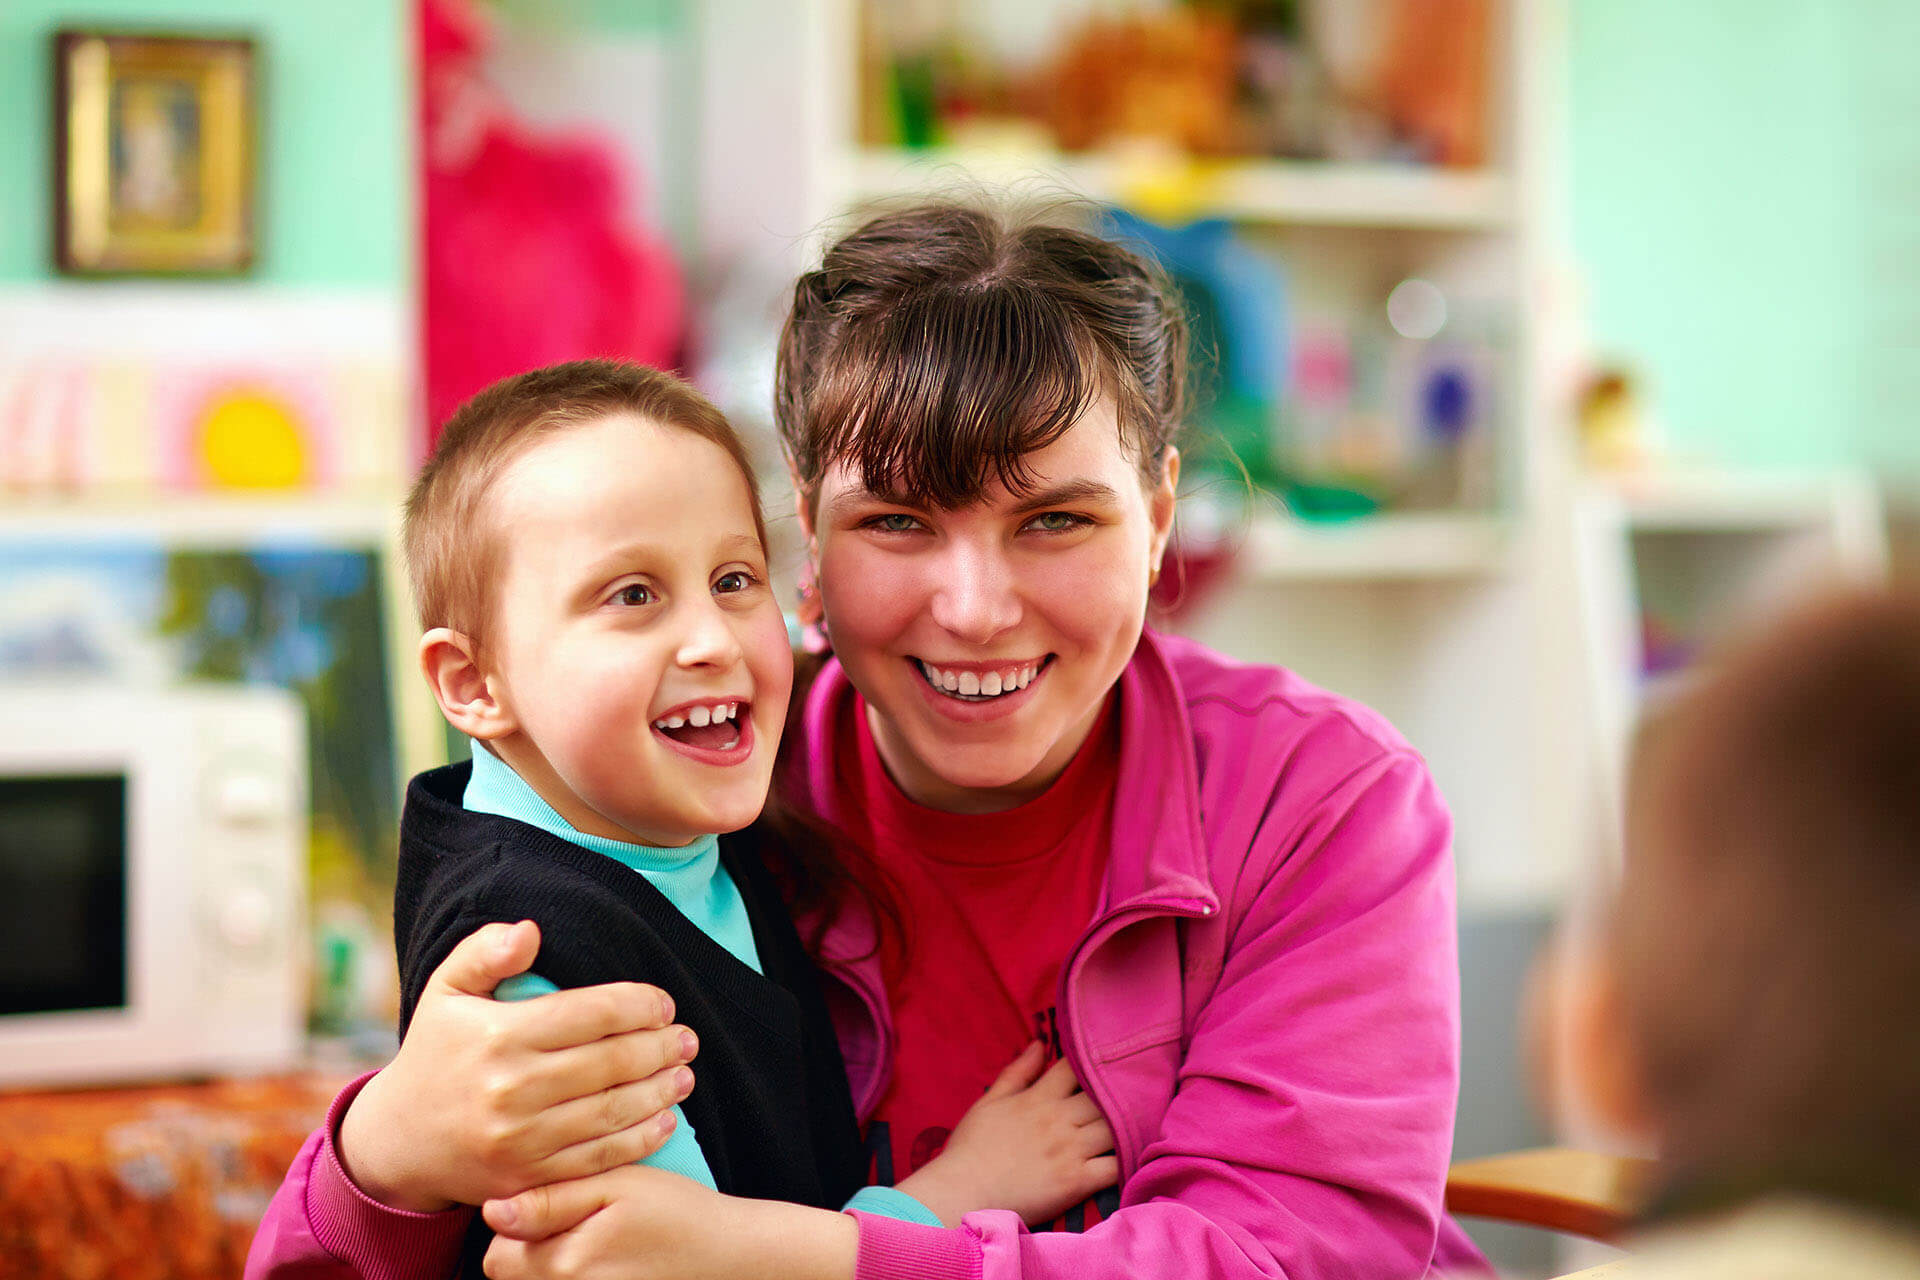 Special Education Teacher - Care For Disability - ESP Healthcare